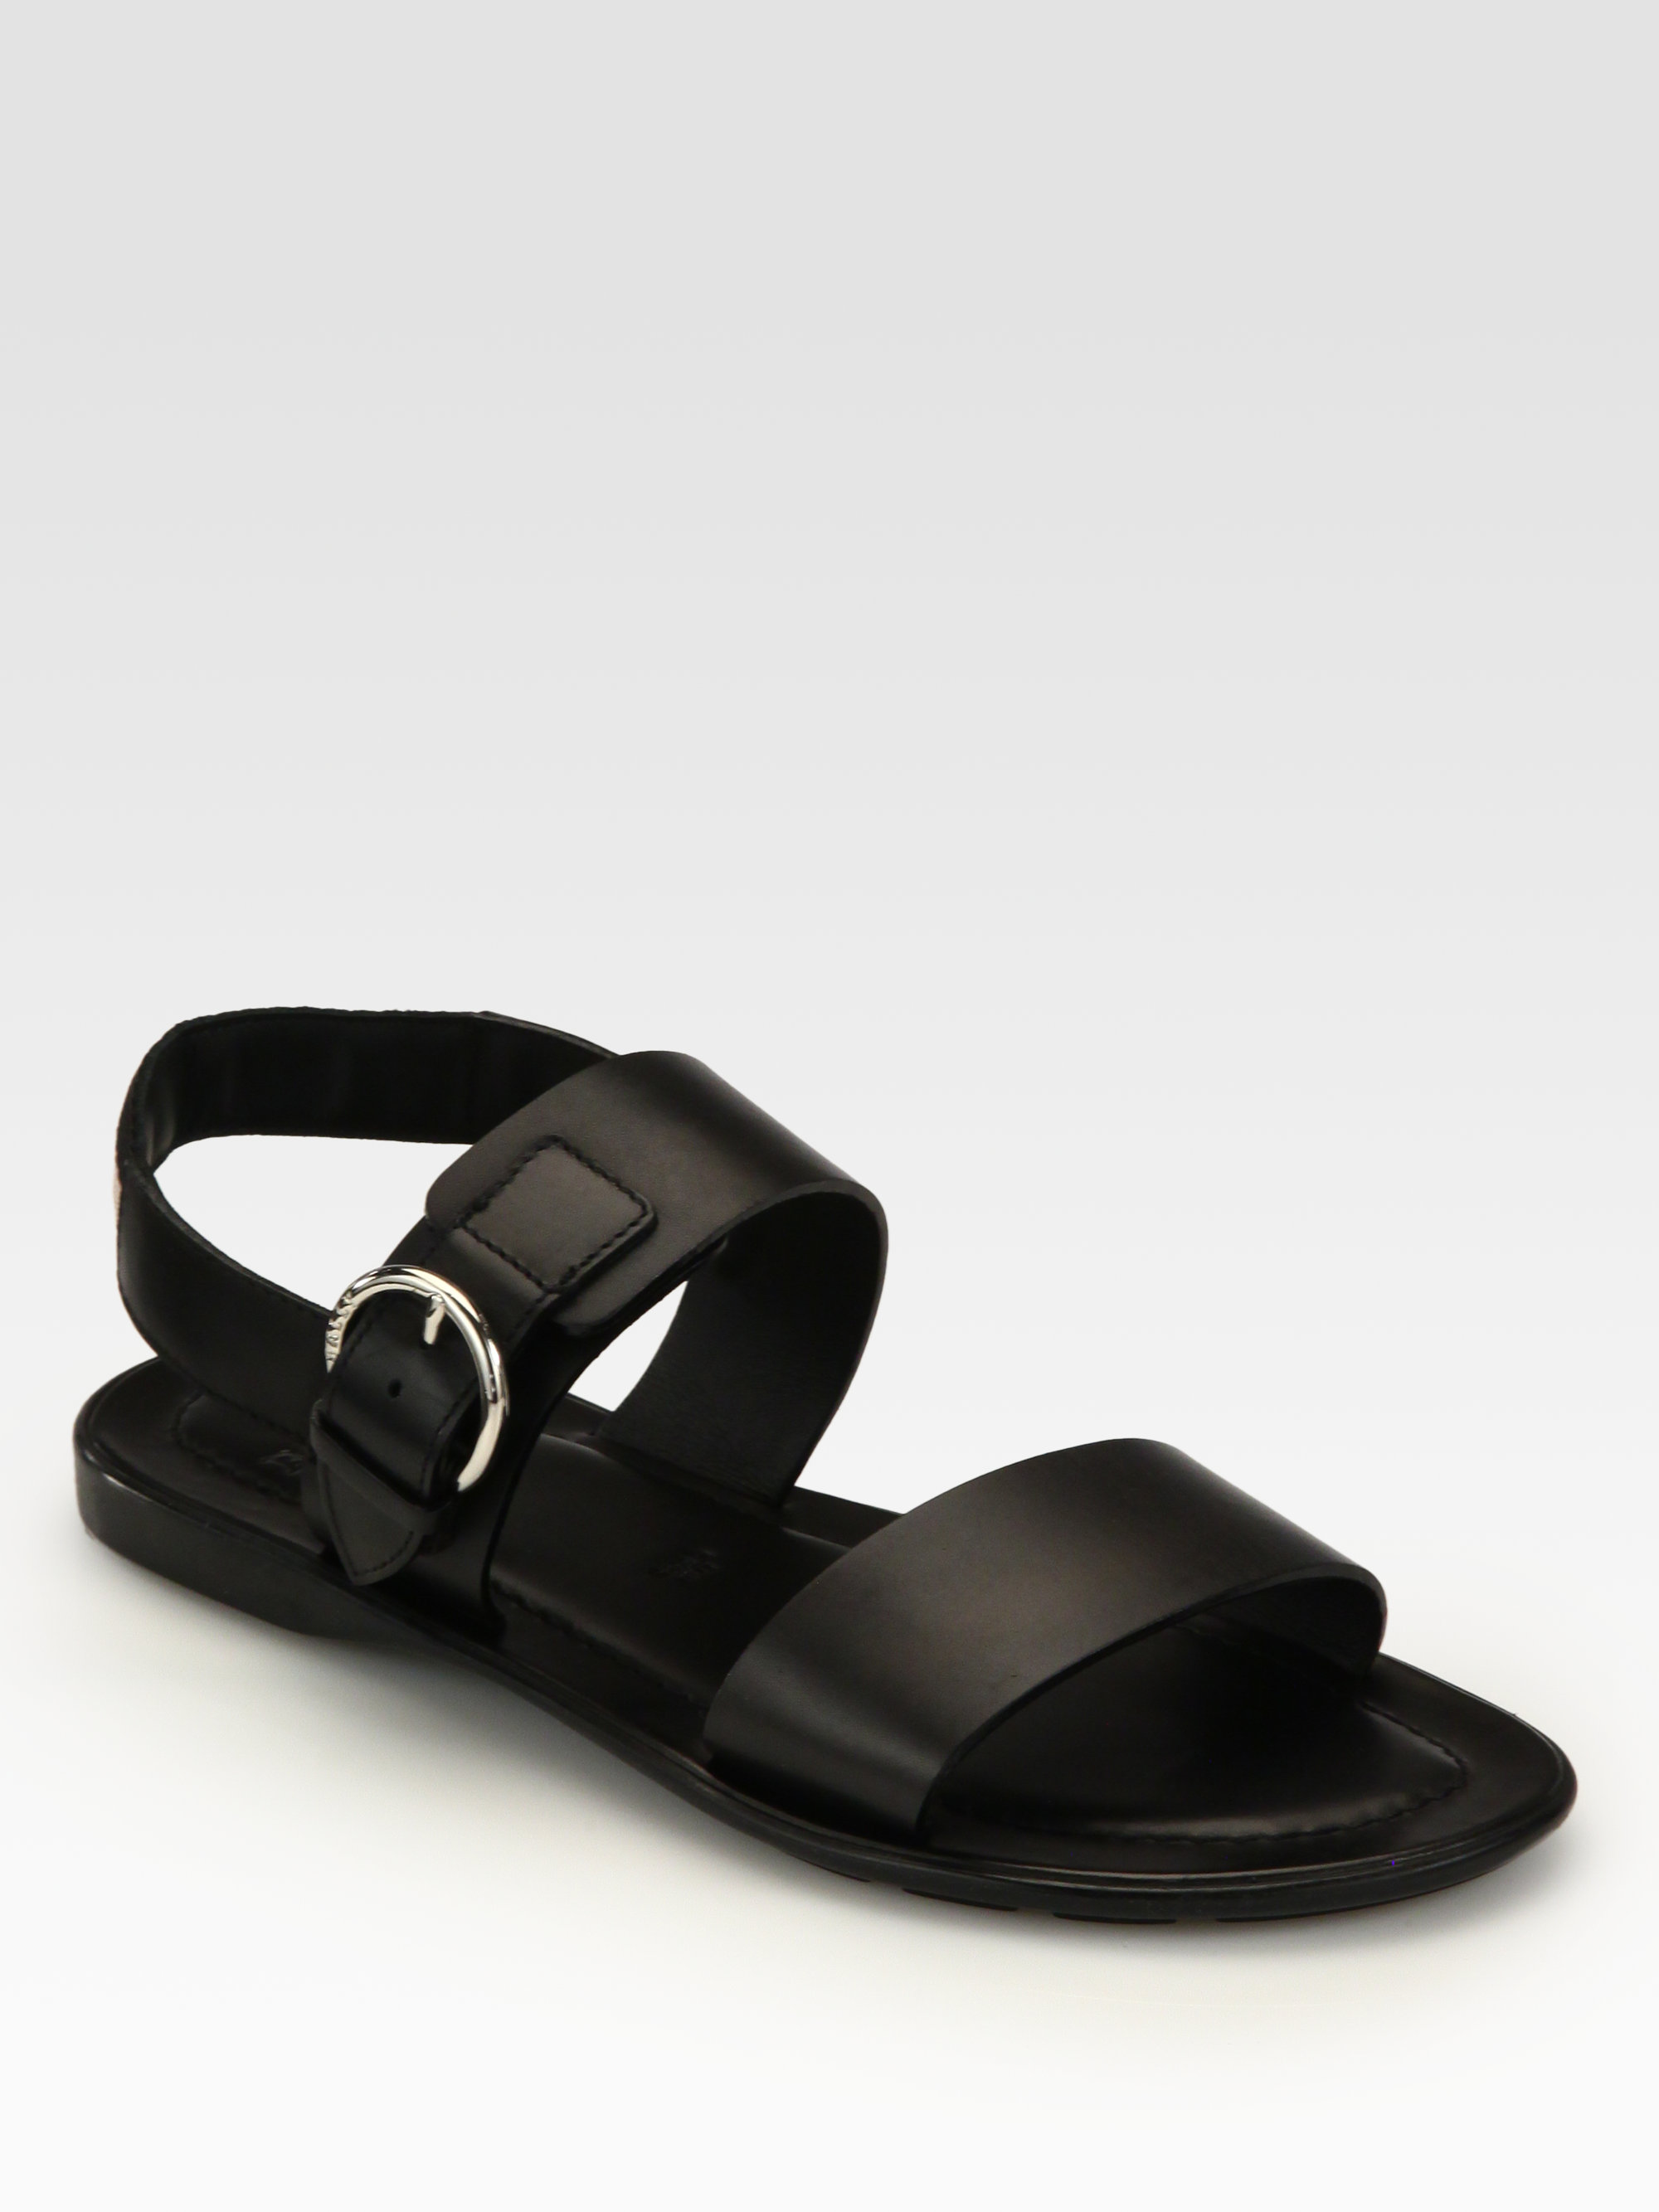 Bally Suede Sandals